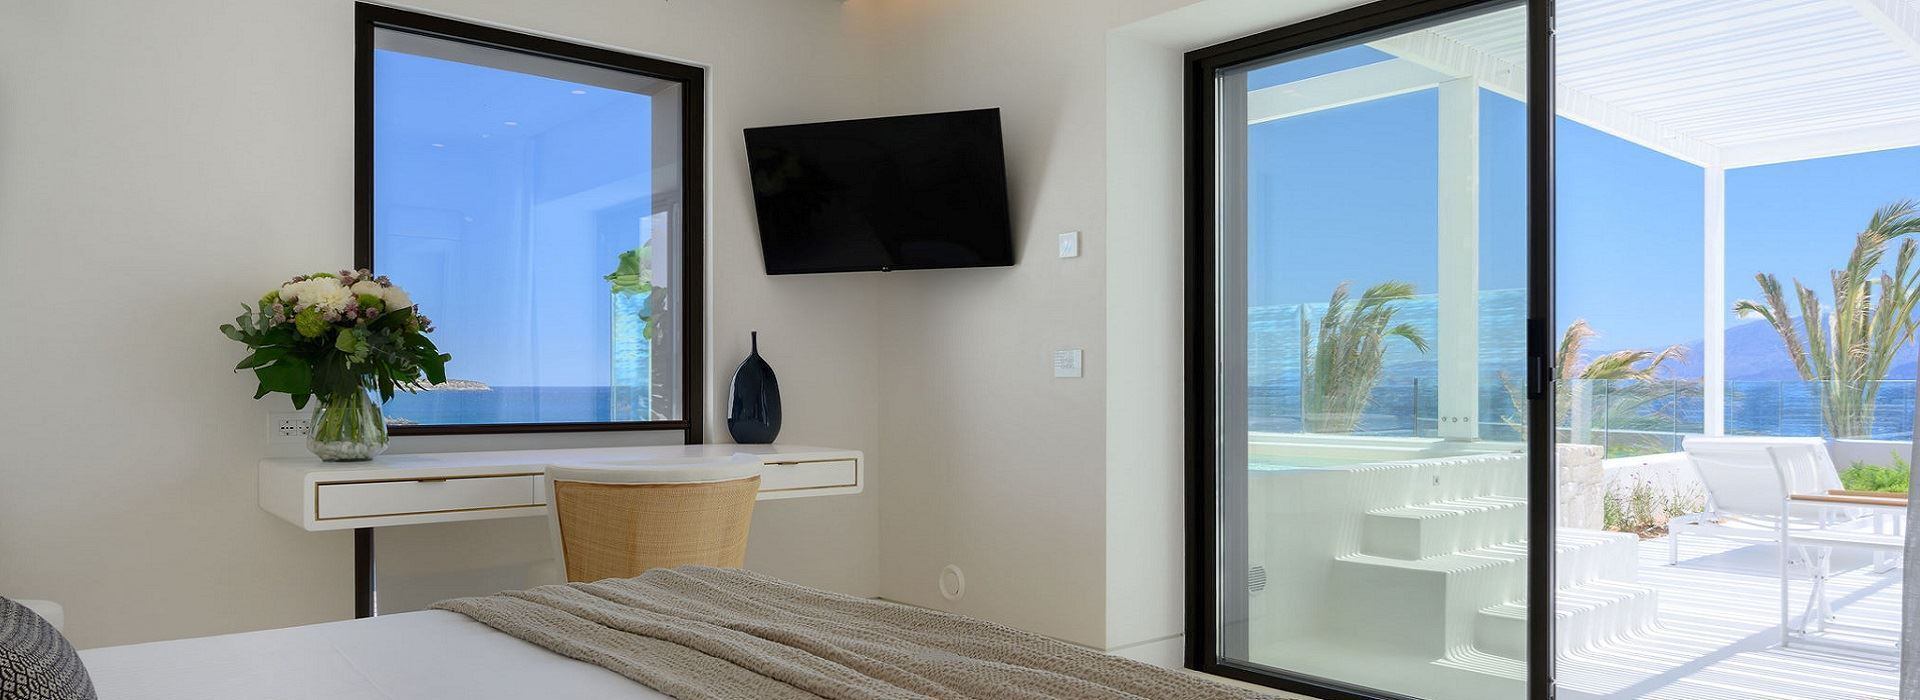 Deluxe Rooms with Outdoor Jacuzzi